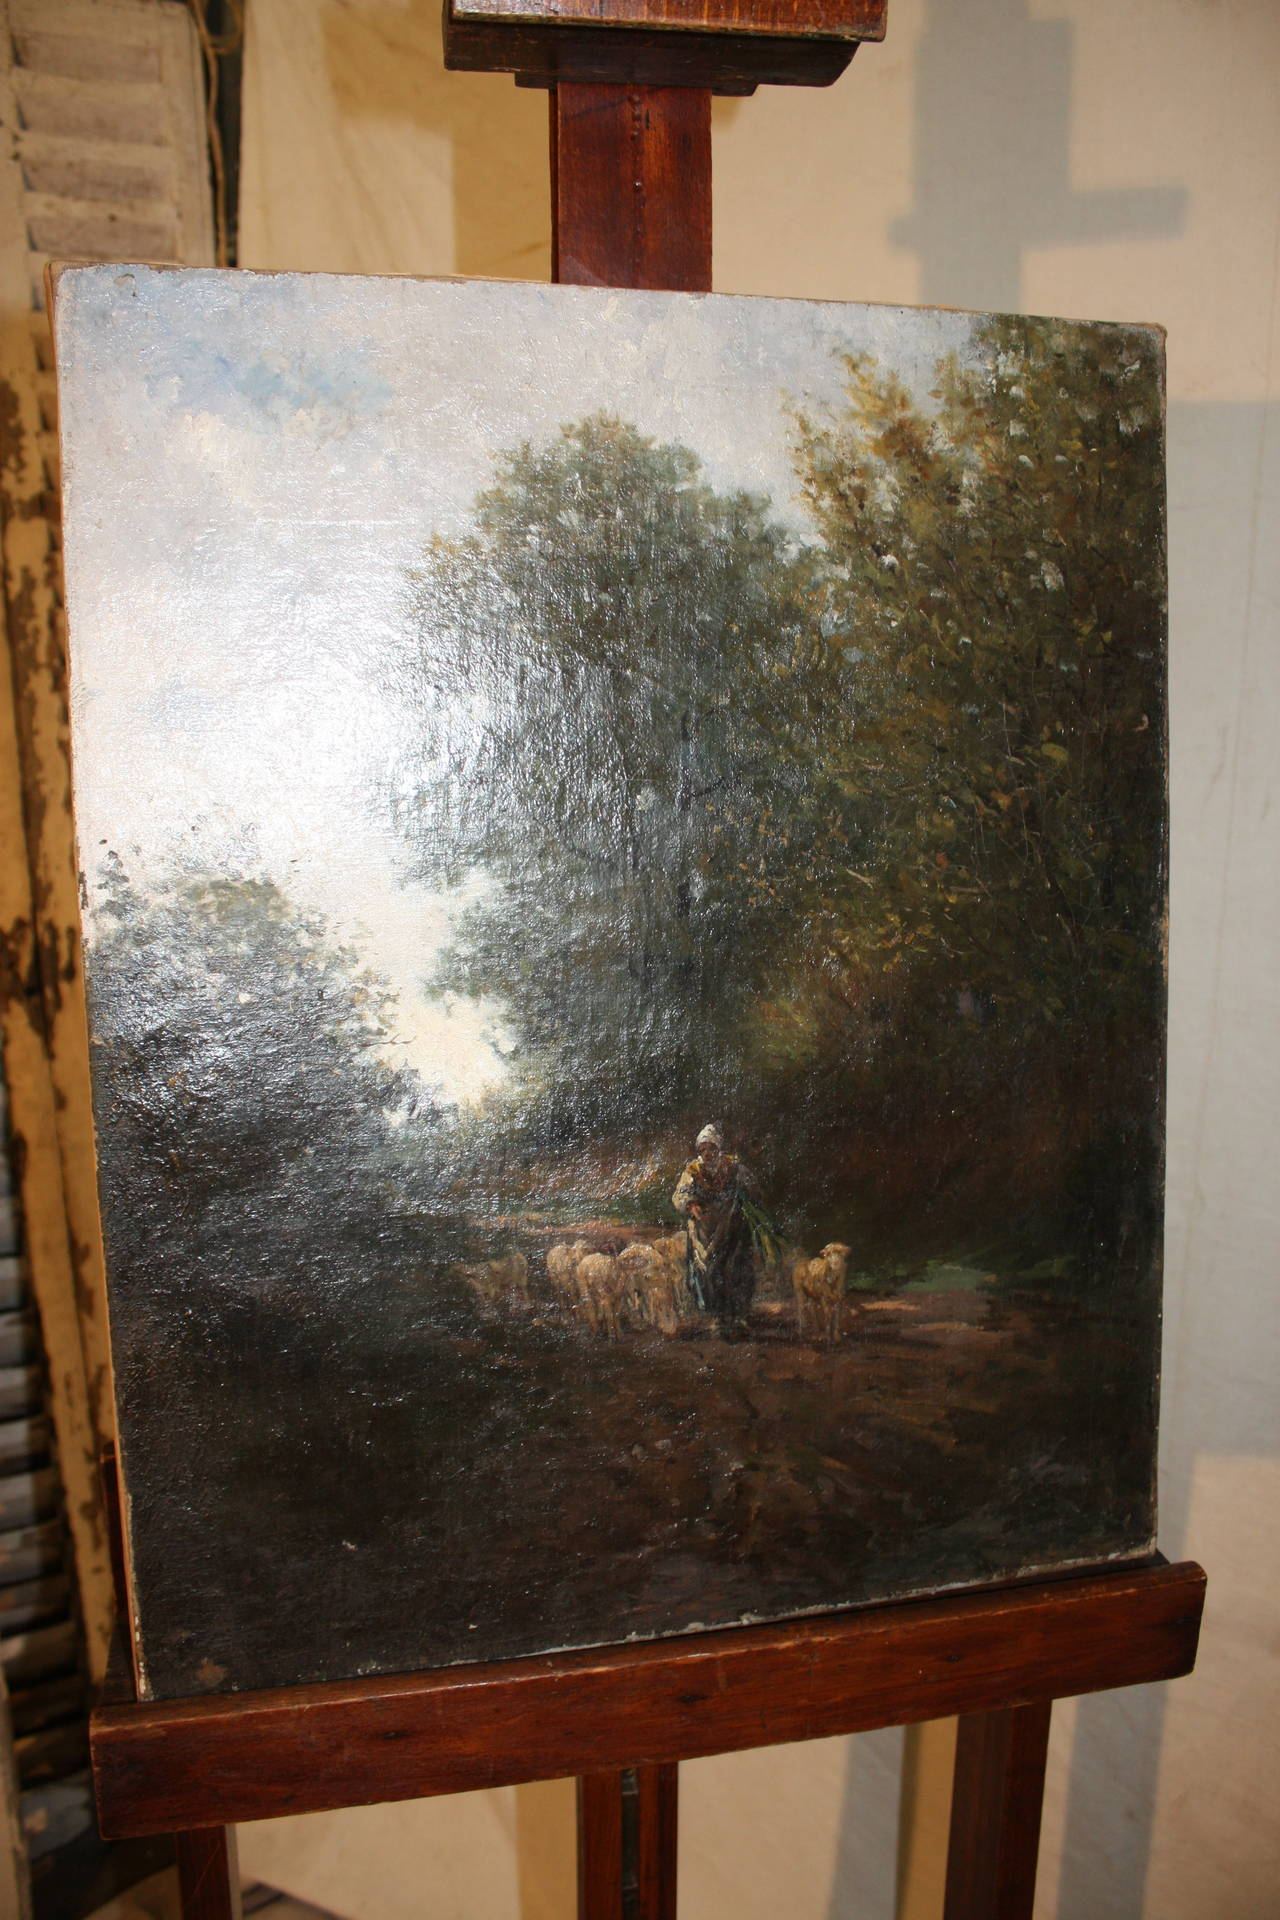 19th century French oil painting, oil on canvas.